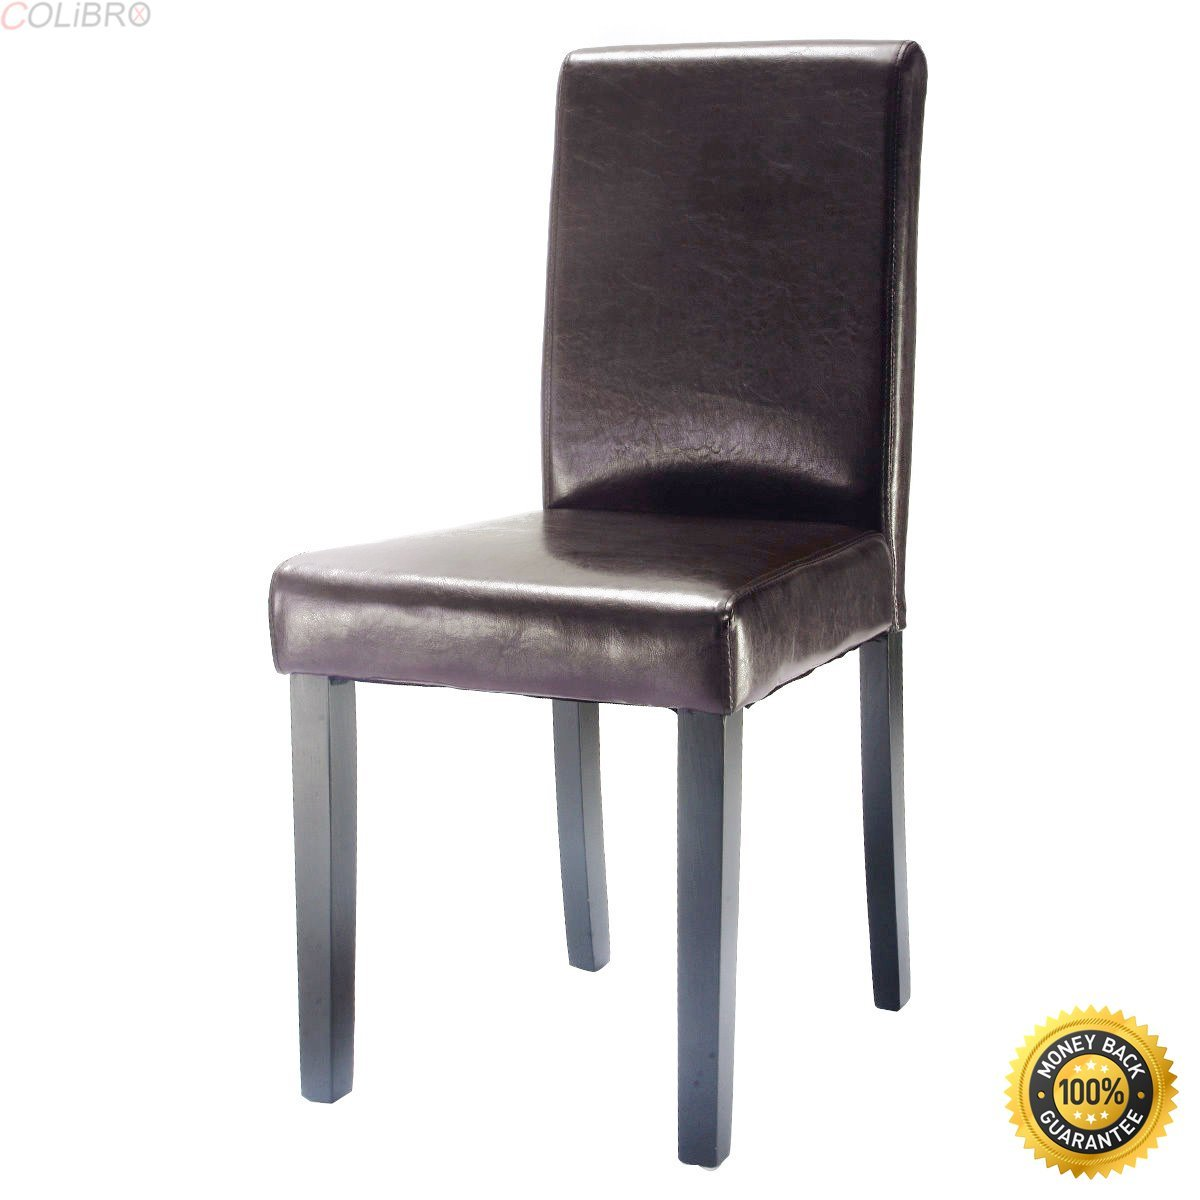 cheap chairs for sale bedroom chair yellow acrylic dining find get quotations colibrox set of 4 elegant design leather contemporary home room